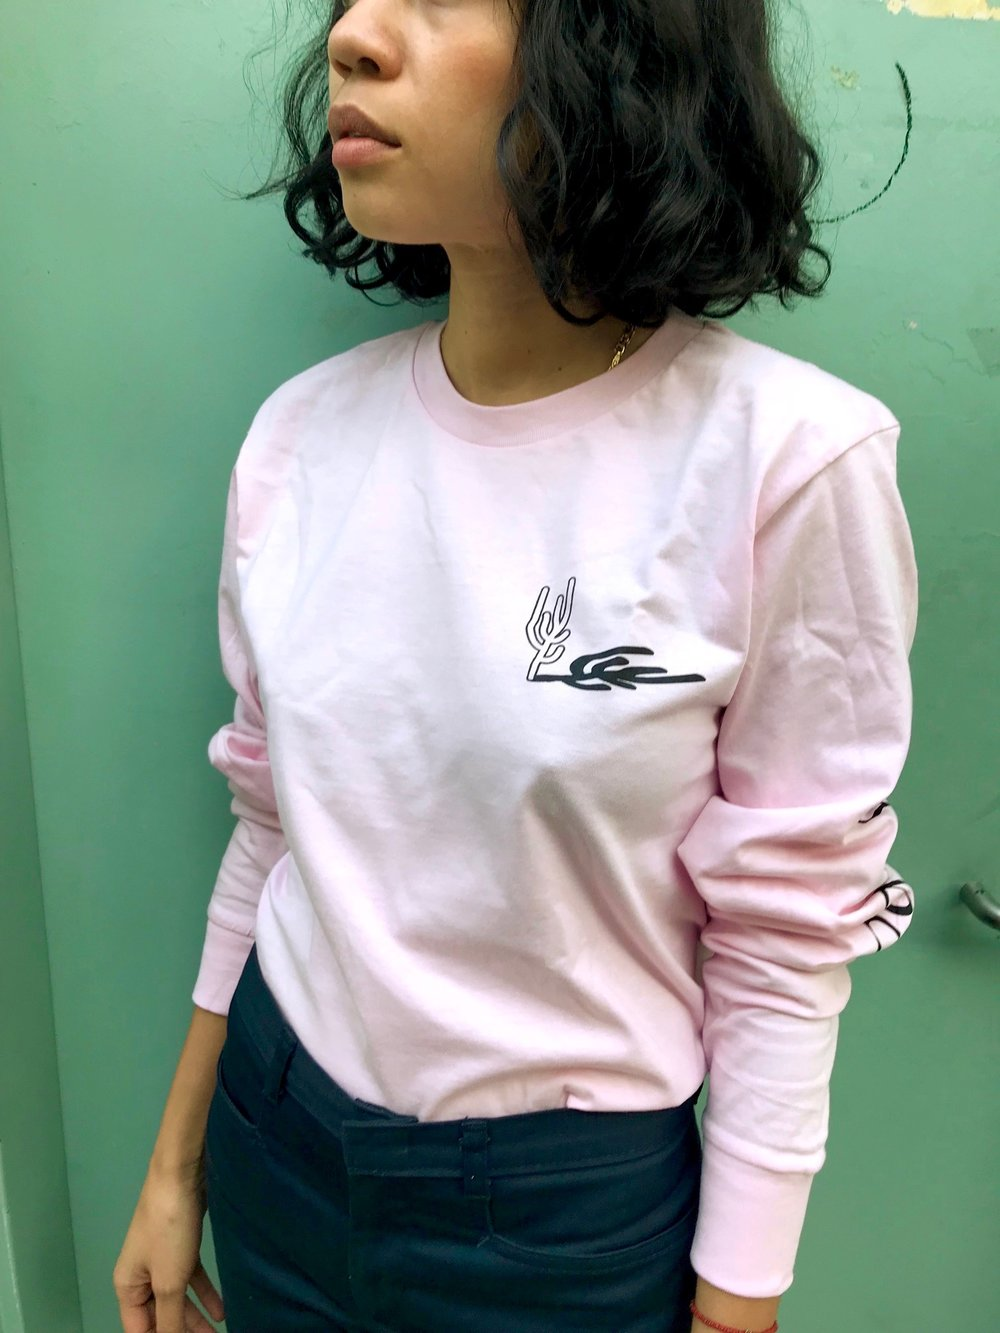 "New Sofia Bolt Long Sleeve Shirts available celebrating the release of the single ""Get Out of My Head."" Designed by Vanda Daftari and printed by E.S Serigraphy. - Printed on 100% Cotton Heritage Shirts$30"